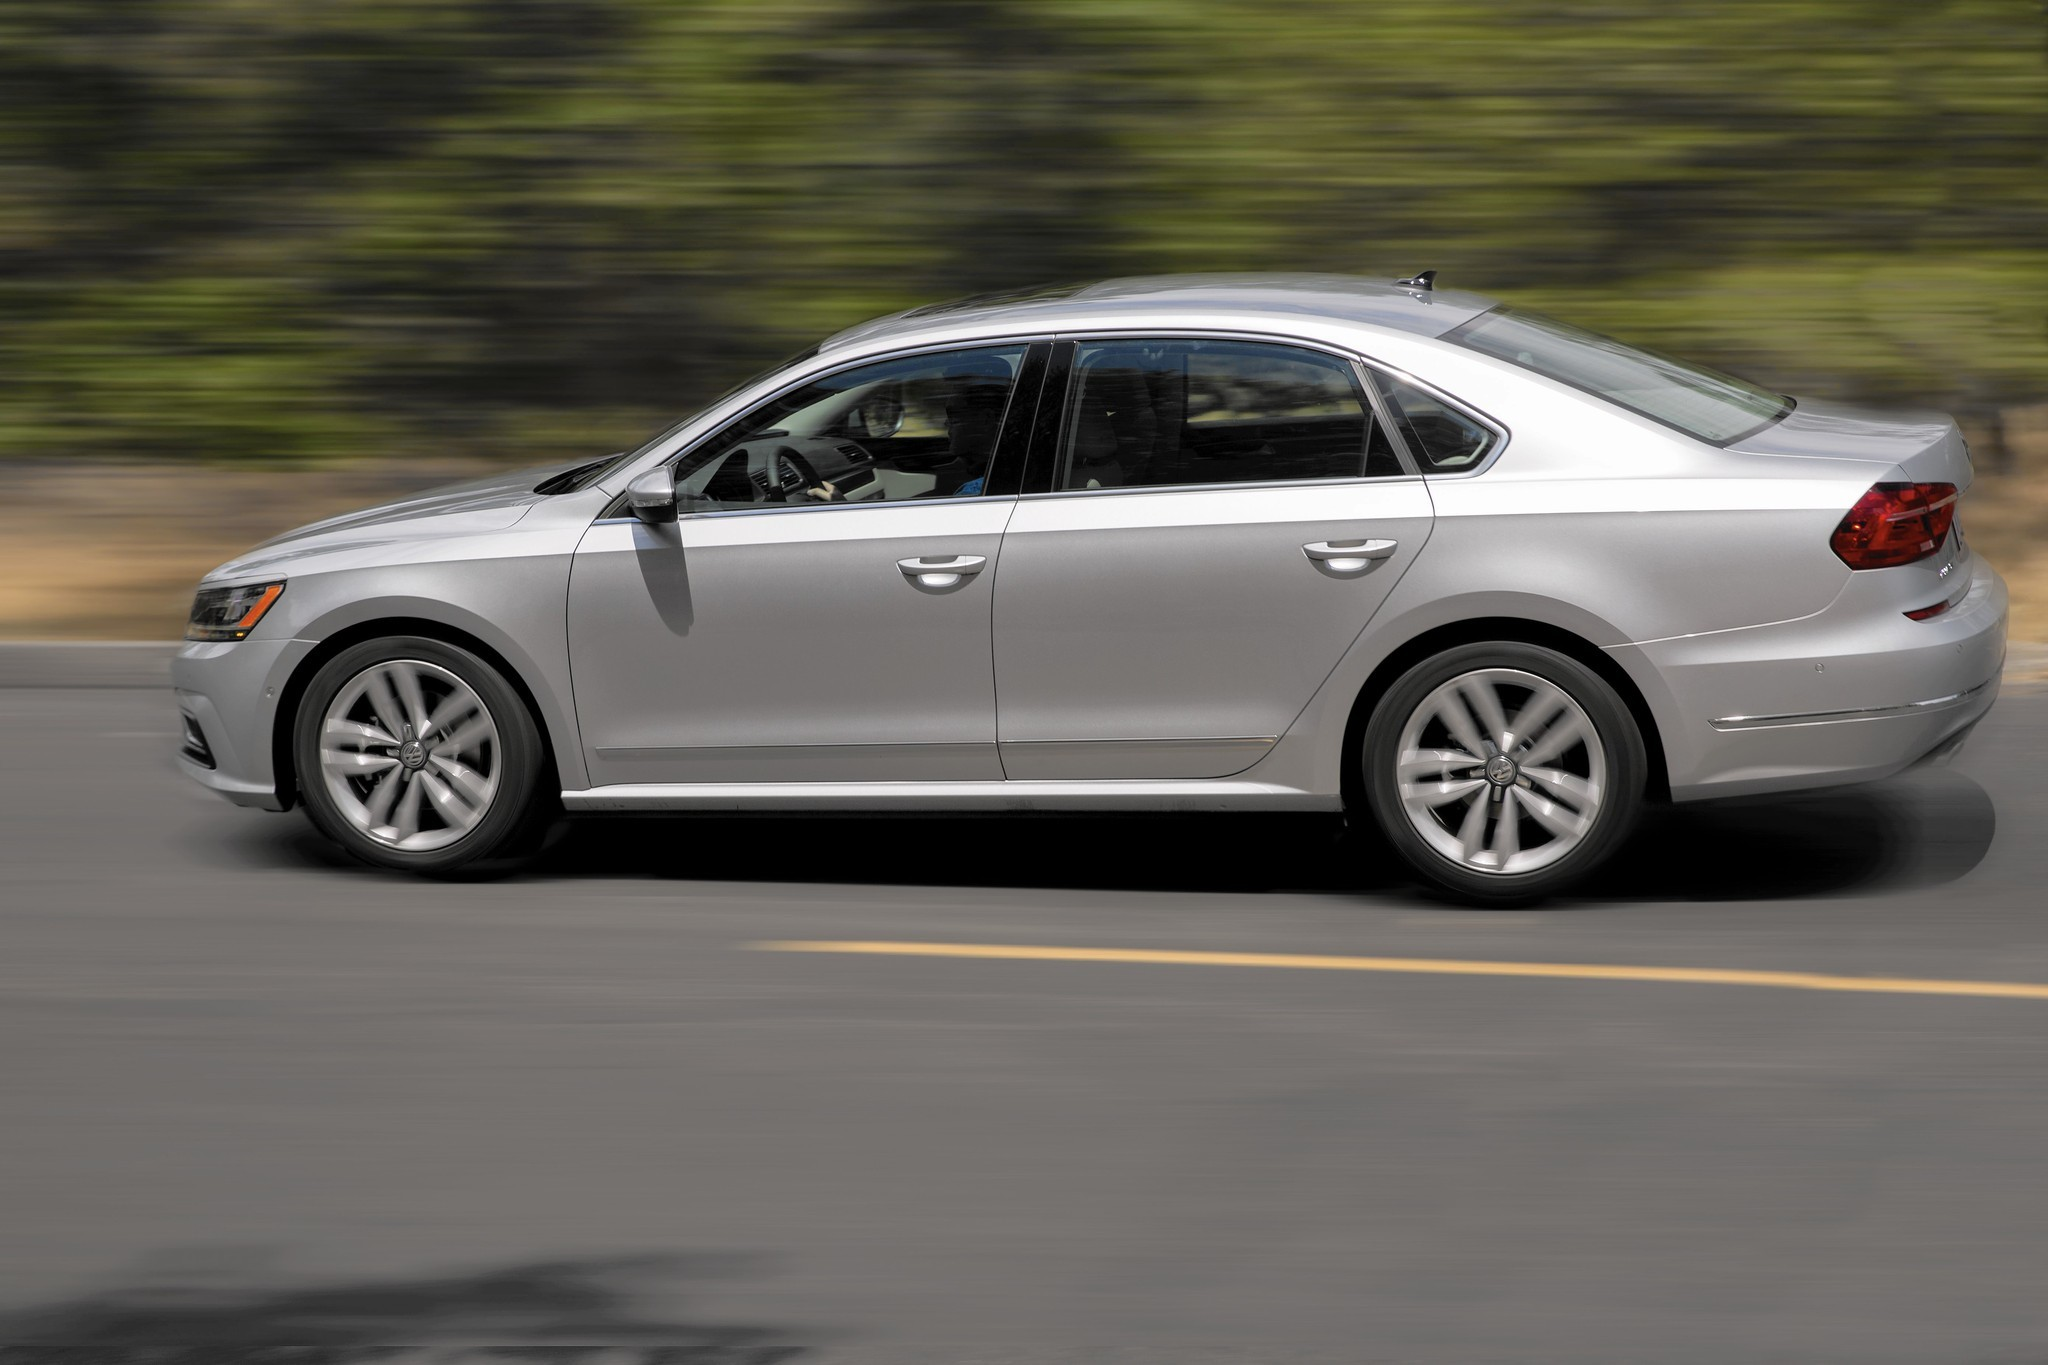 New Compact And Sedan Car Reviews Chicago Tribune